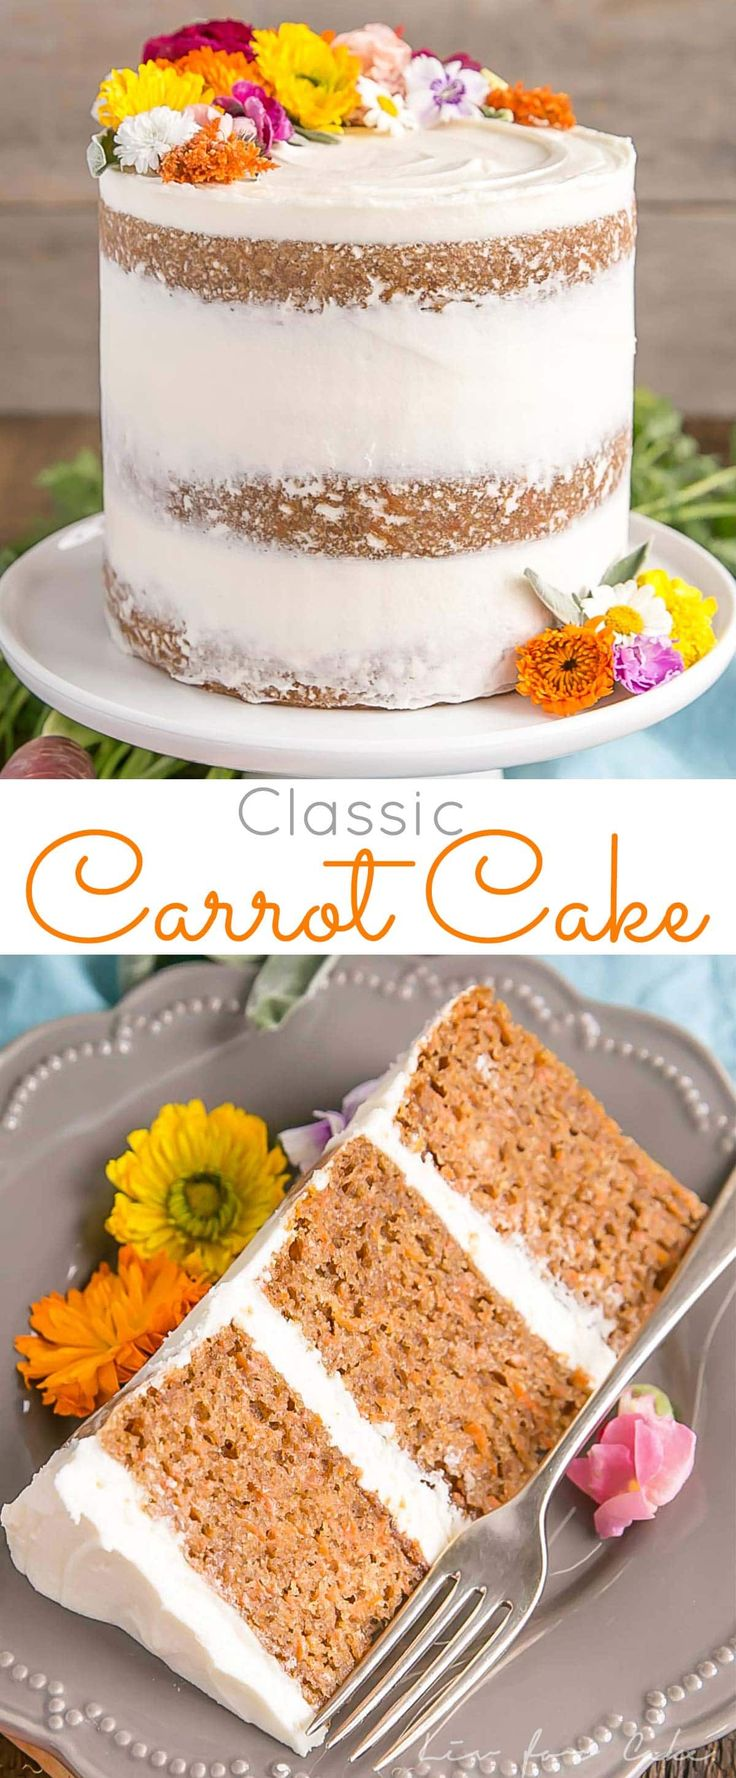 This classic Carrot Cake is one you'll want to add to your recipecollection!…